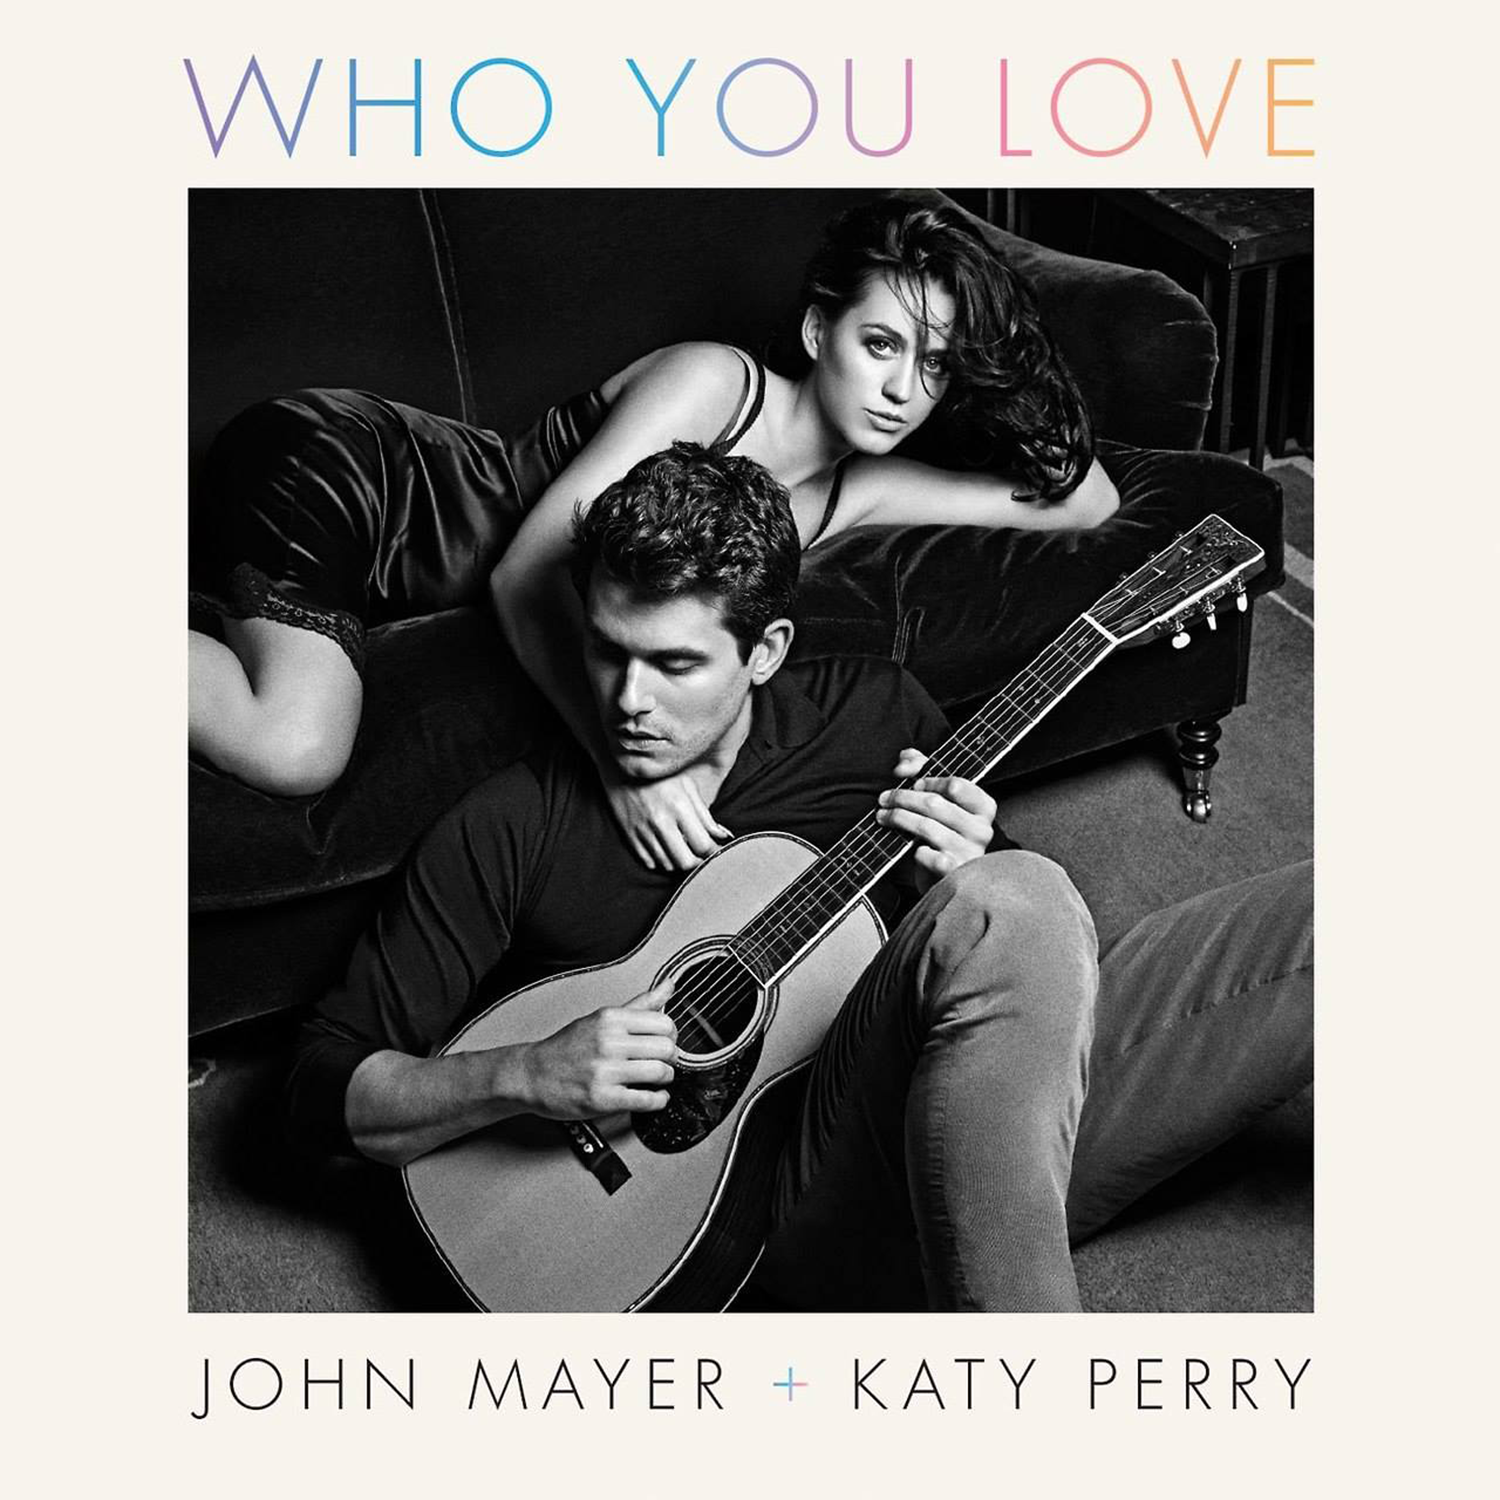 John Mayer ft Katy Perry - Who You Love